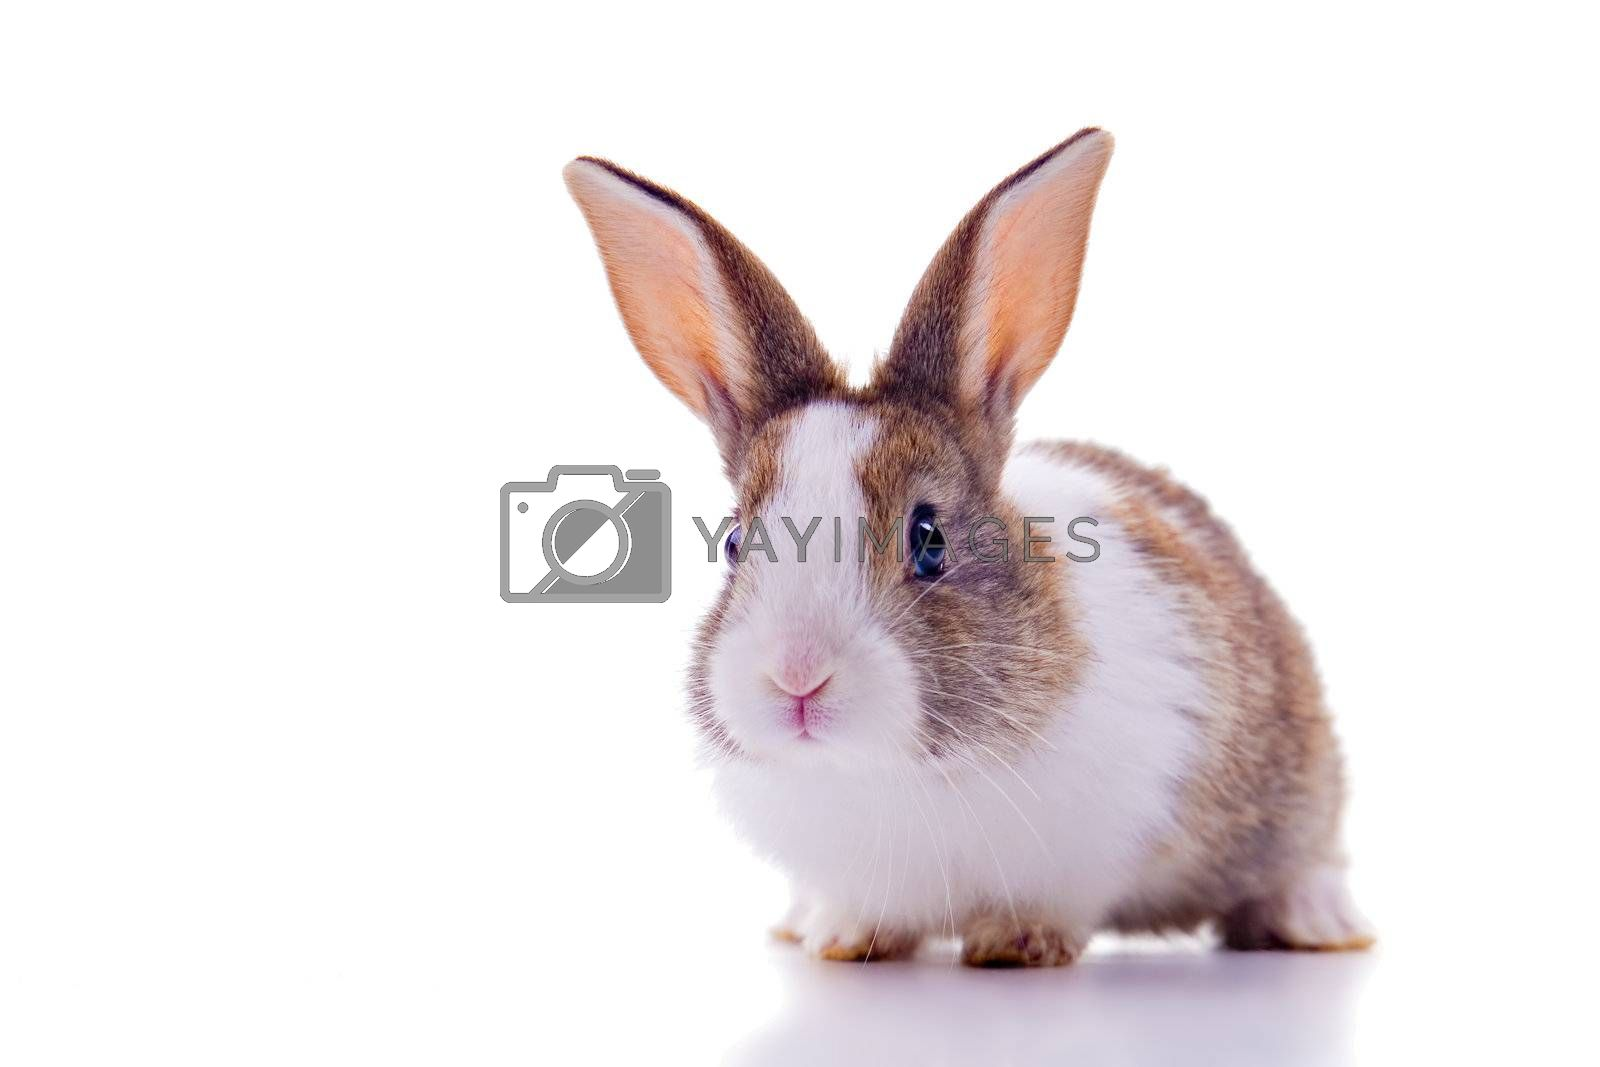 Cute bunny with curious look, looking at the camera. Isolated on white.